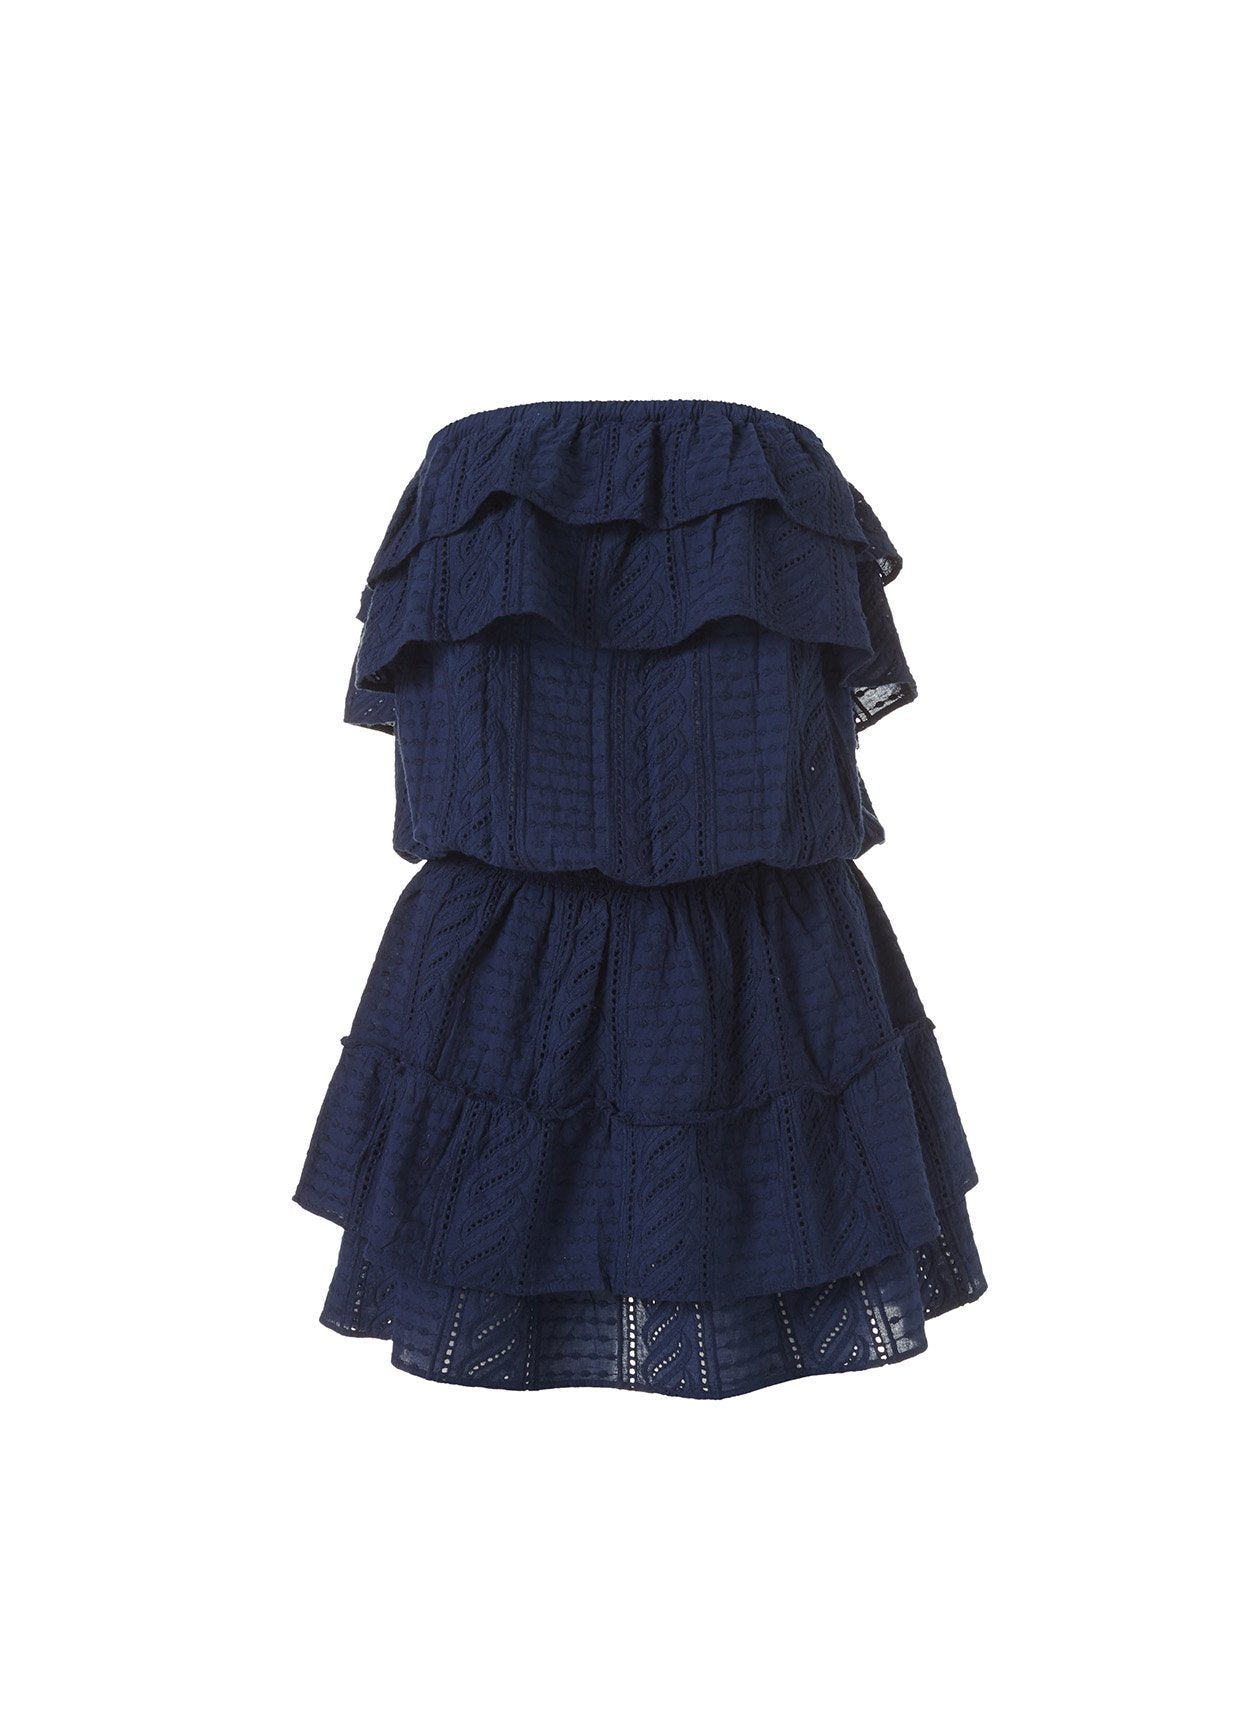 Mia Navy Frill Short Dress 2020